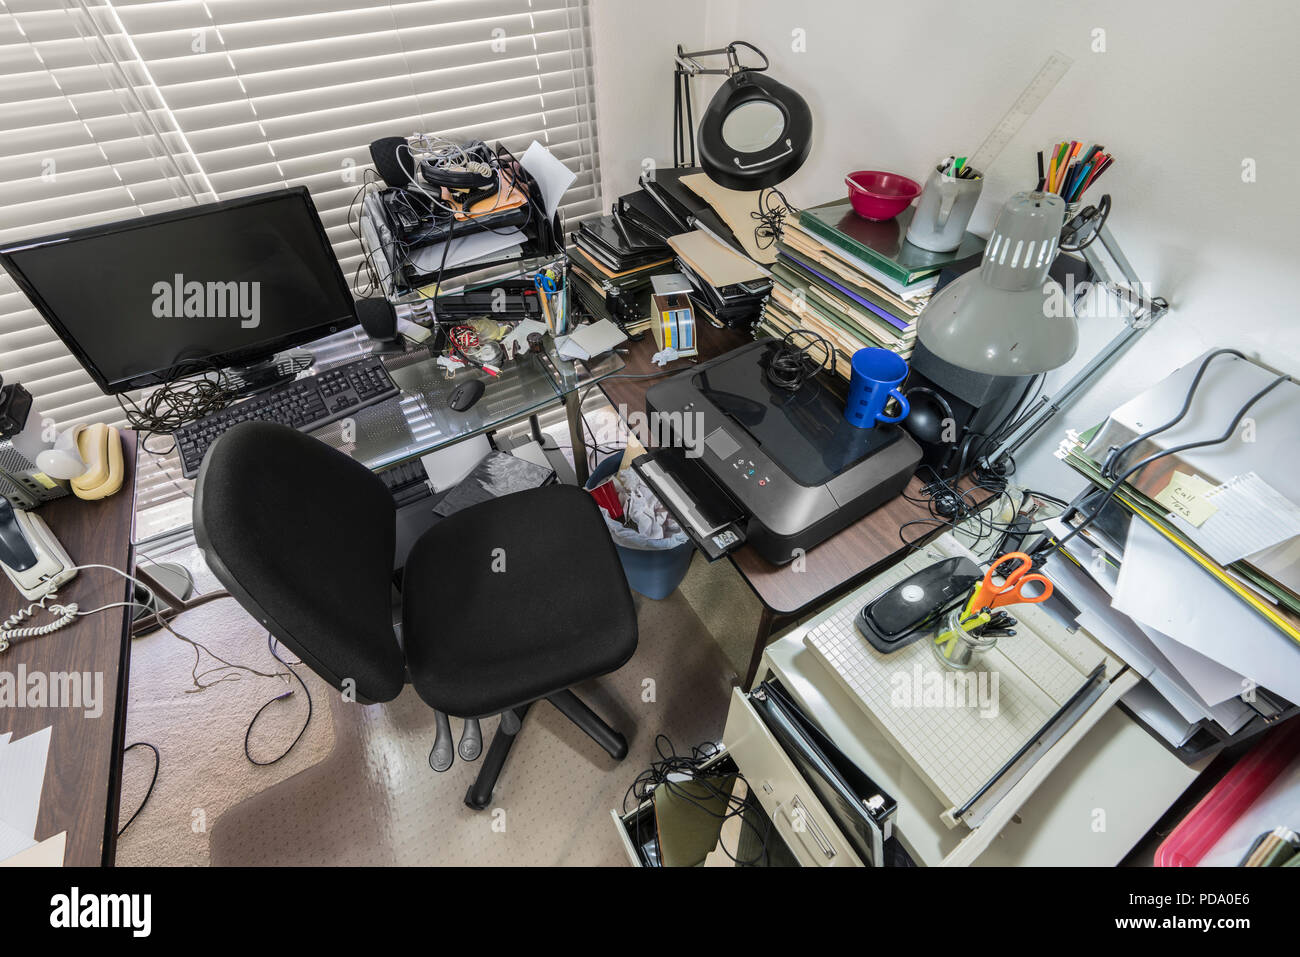 Messy office desk with stacks of files and disorganized clutter. - Stock Image